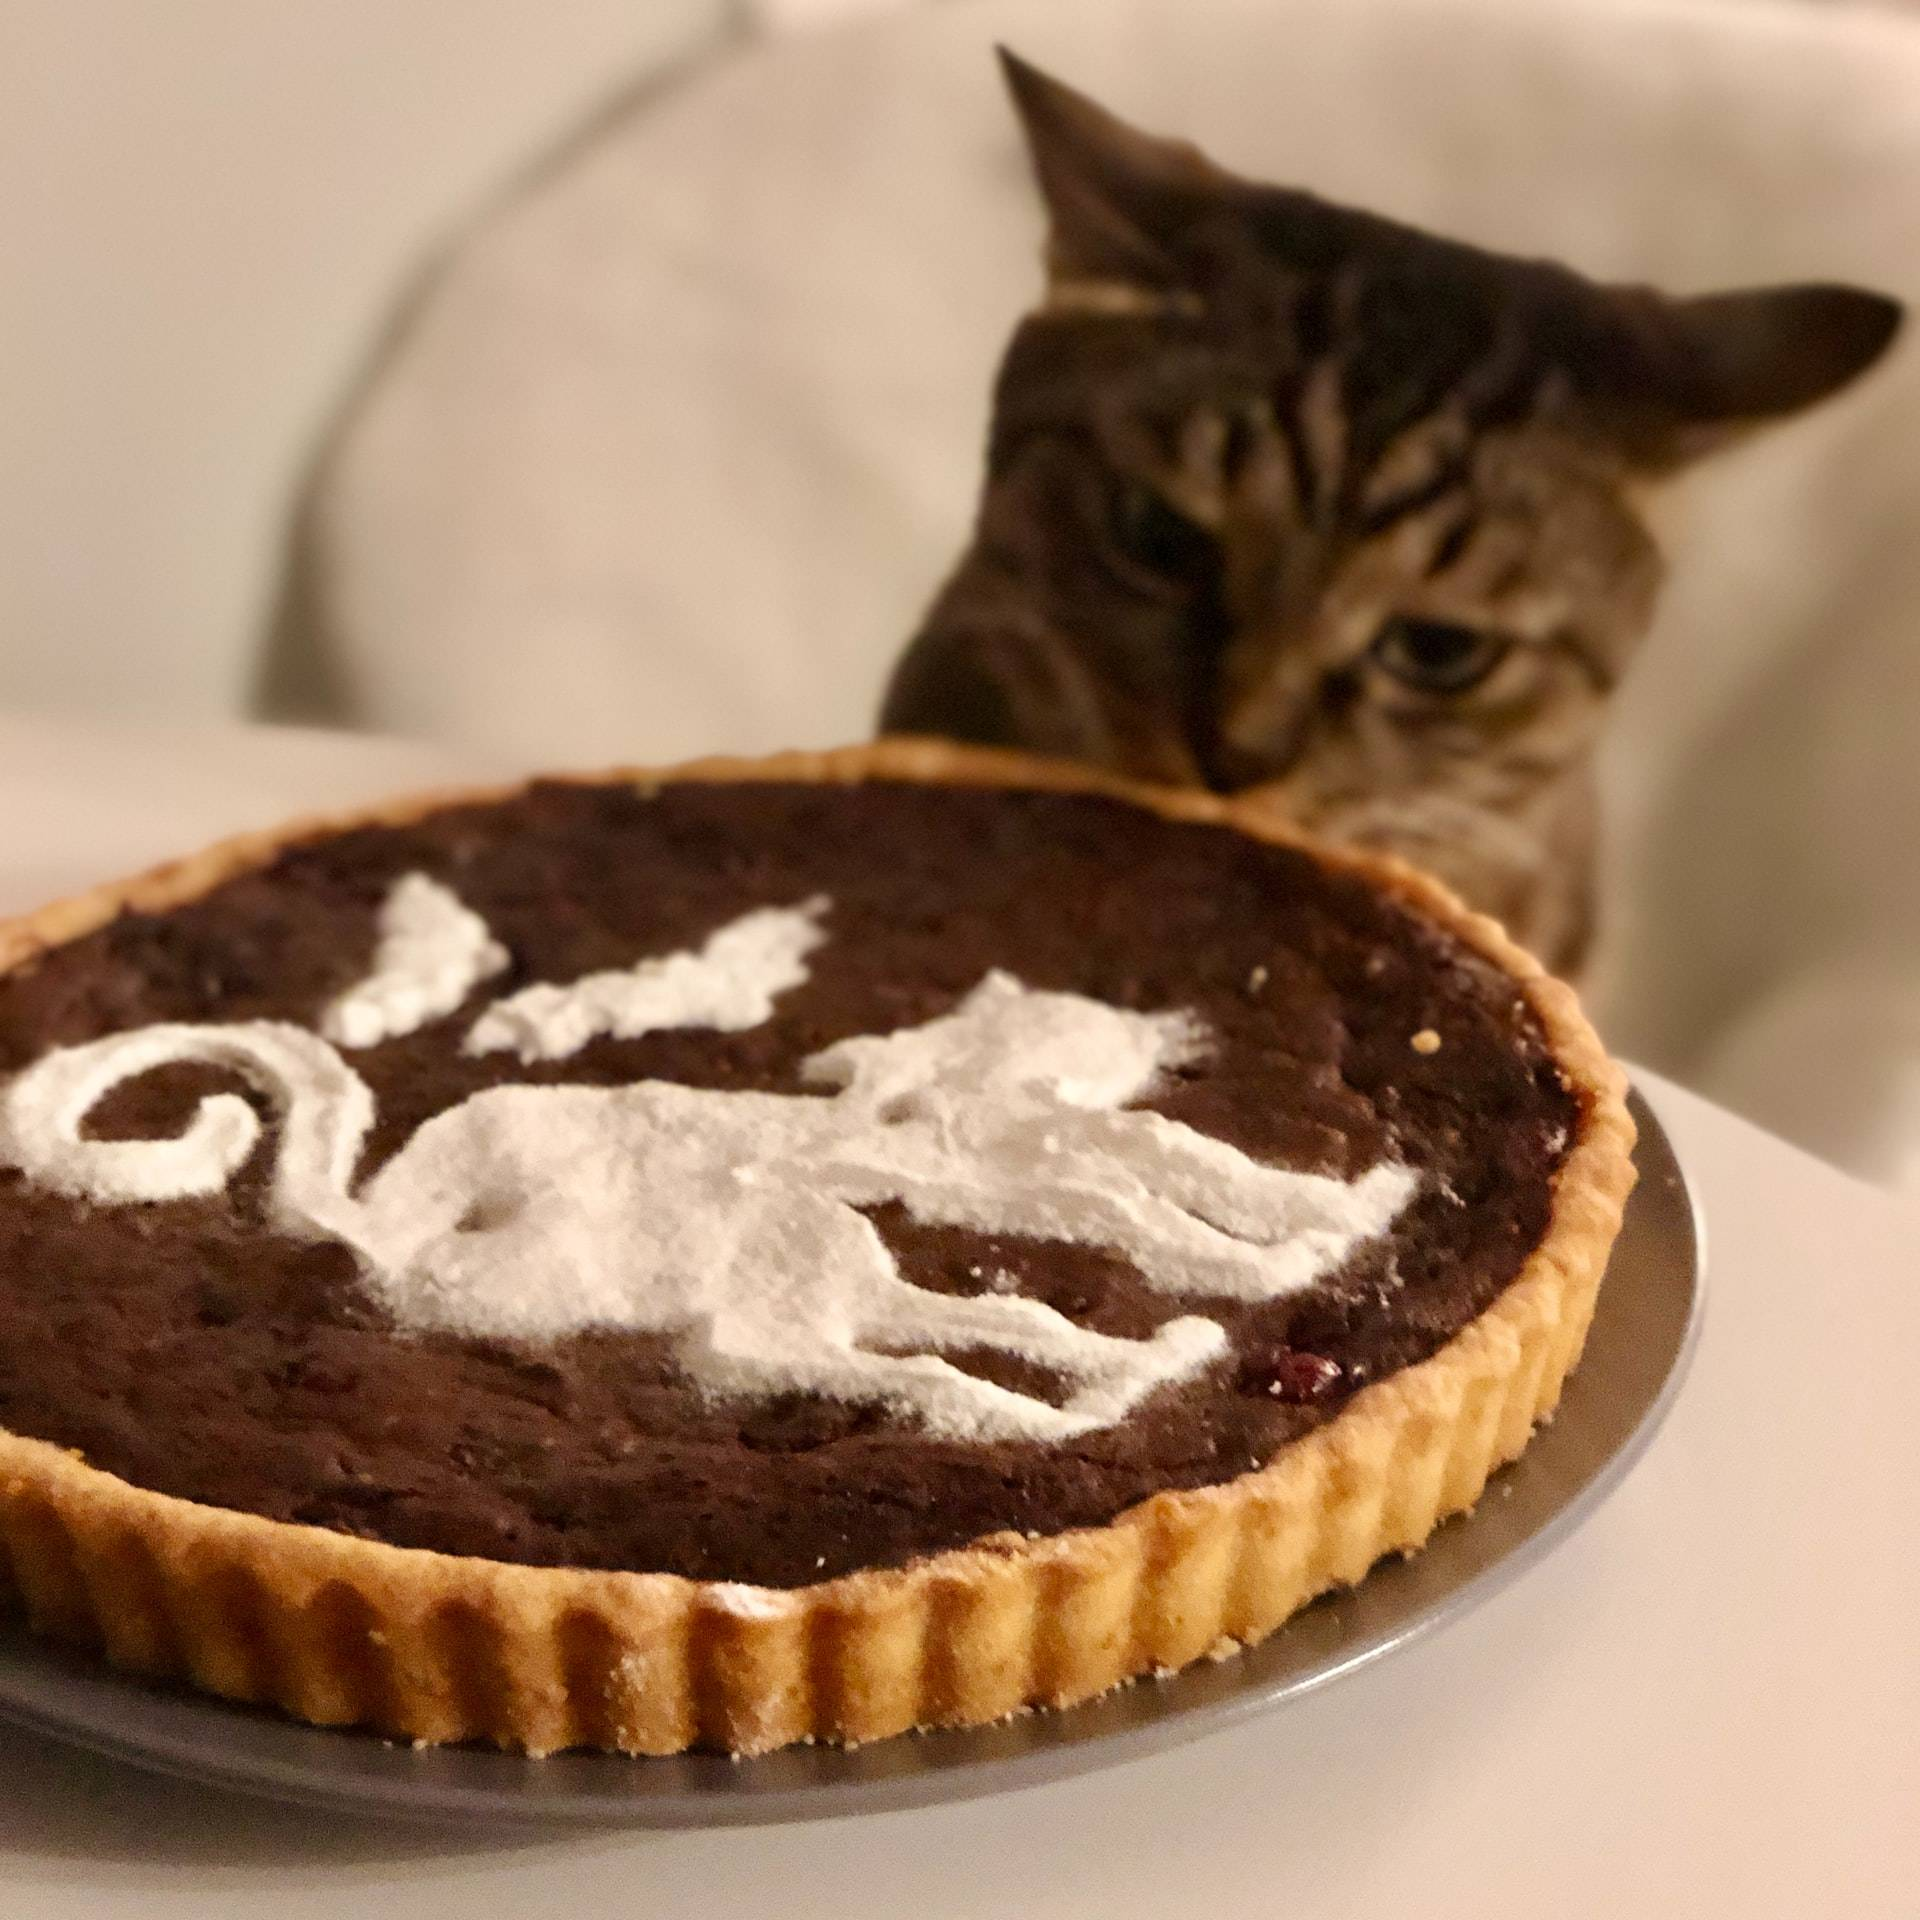 Cat looking at a pie